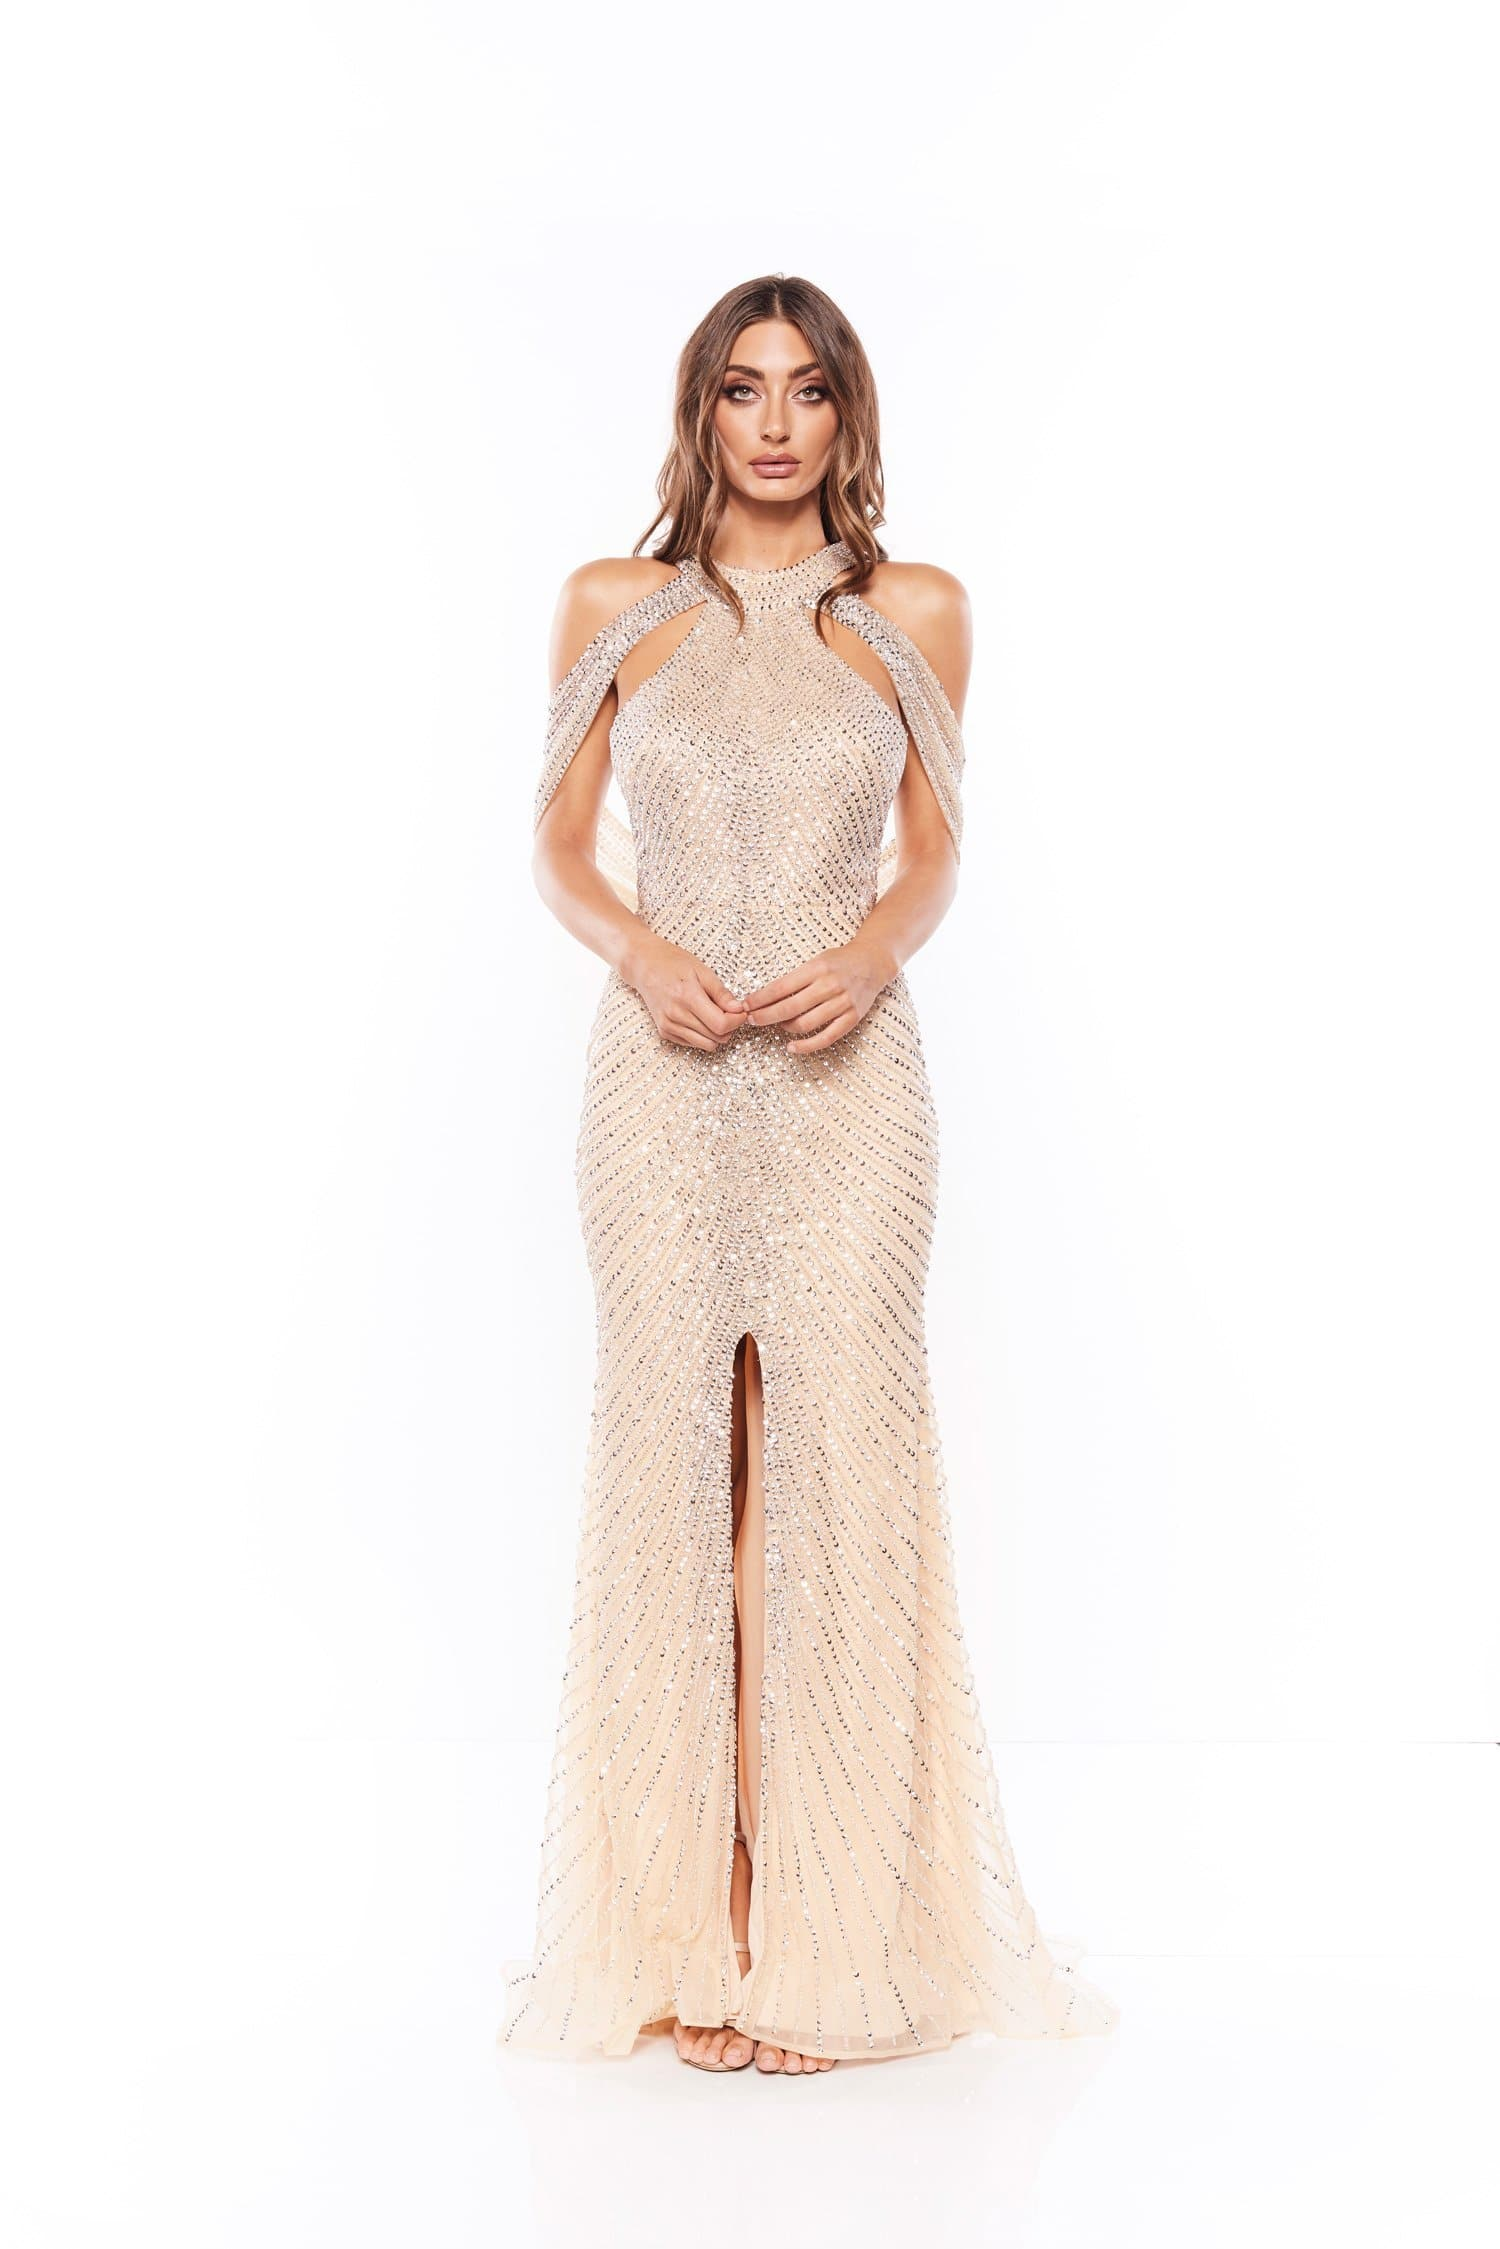 Marcela - Nude Beaded Gown With Neck, Back Detail and Slit